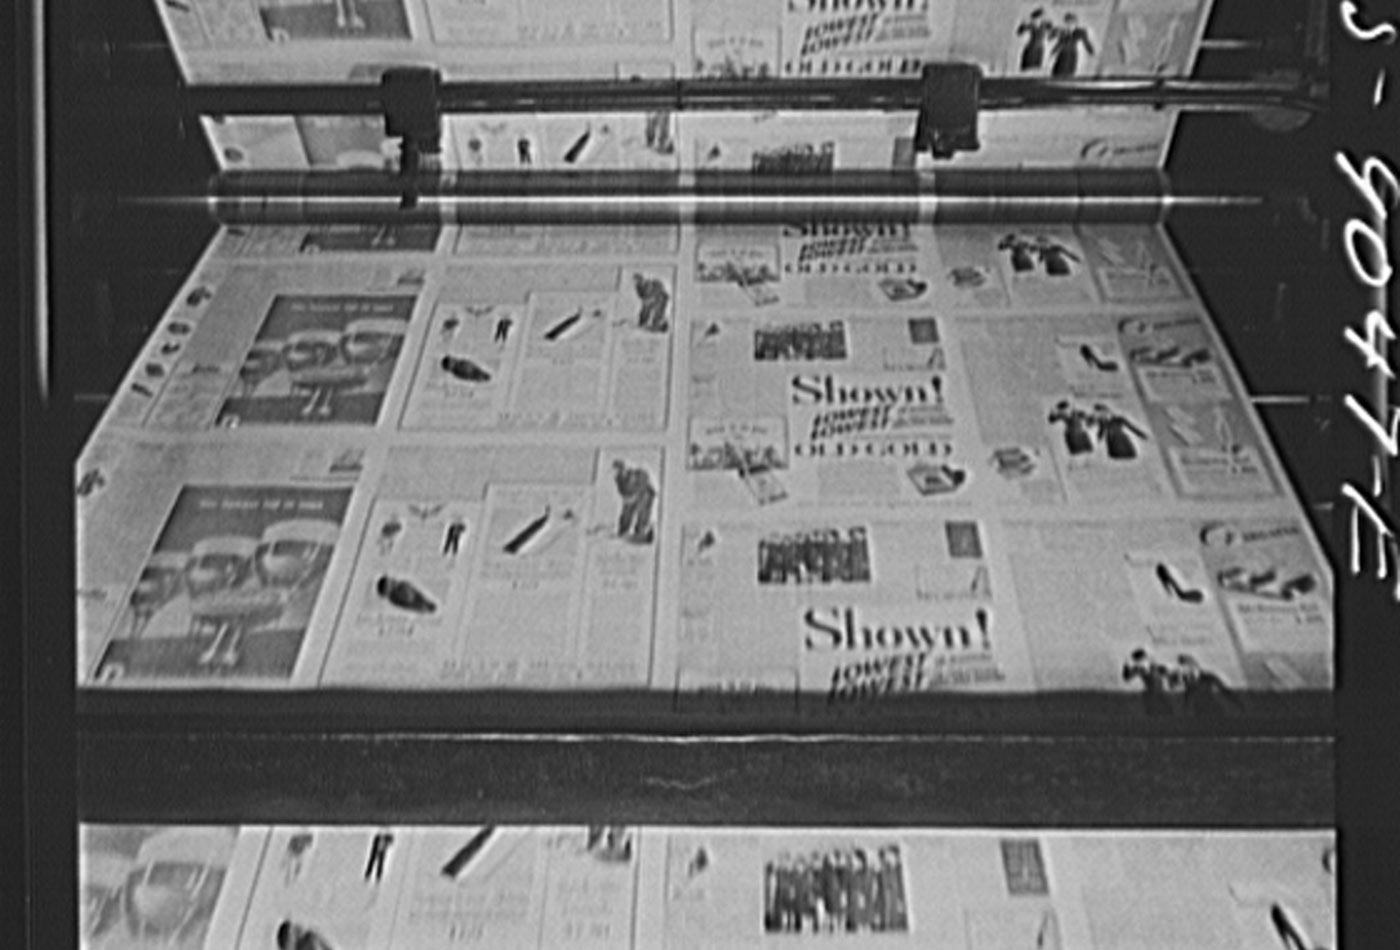 Pressroom of the New York Times newspaper.